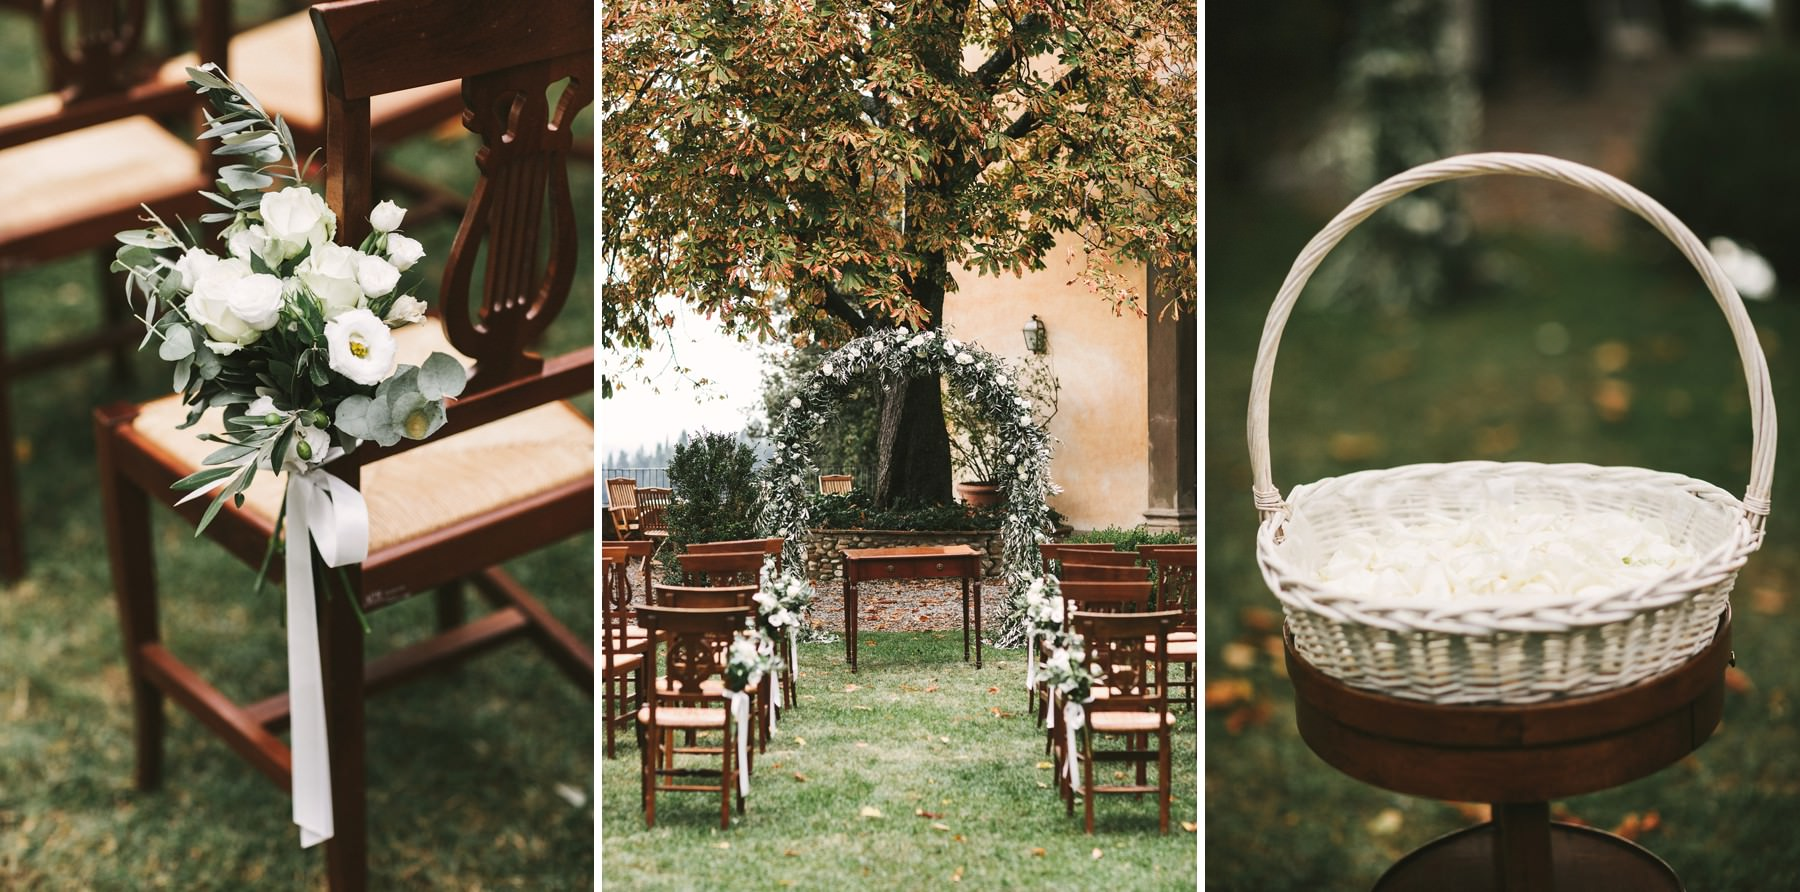 Villa Il Poggiale A Classy And Poetic Wedding In Italy A Dream Coming True